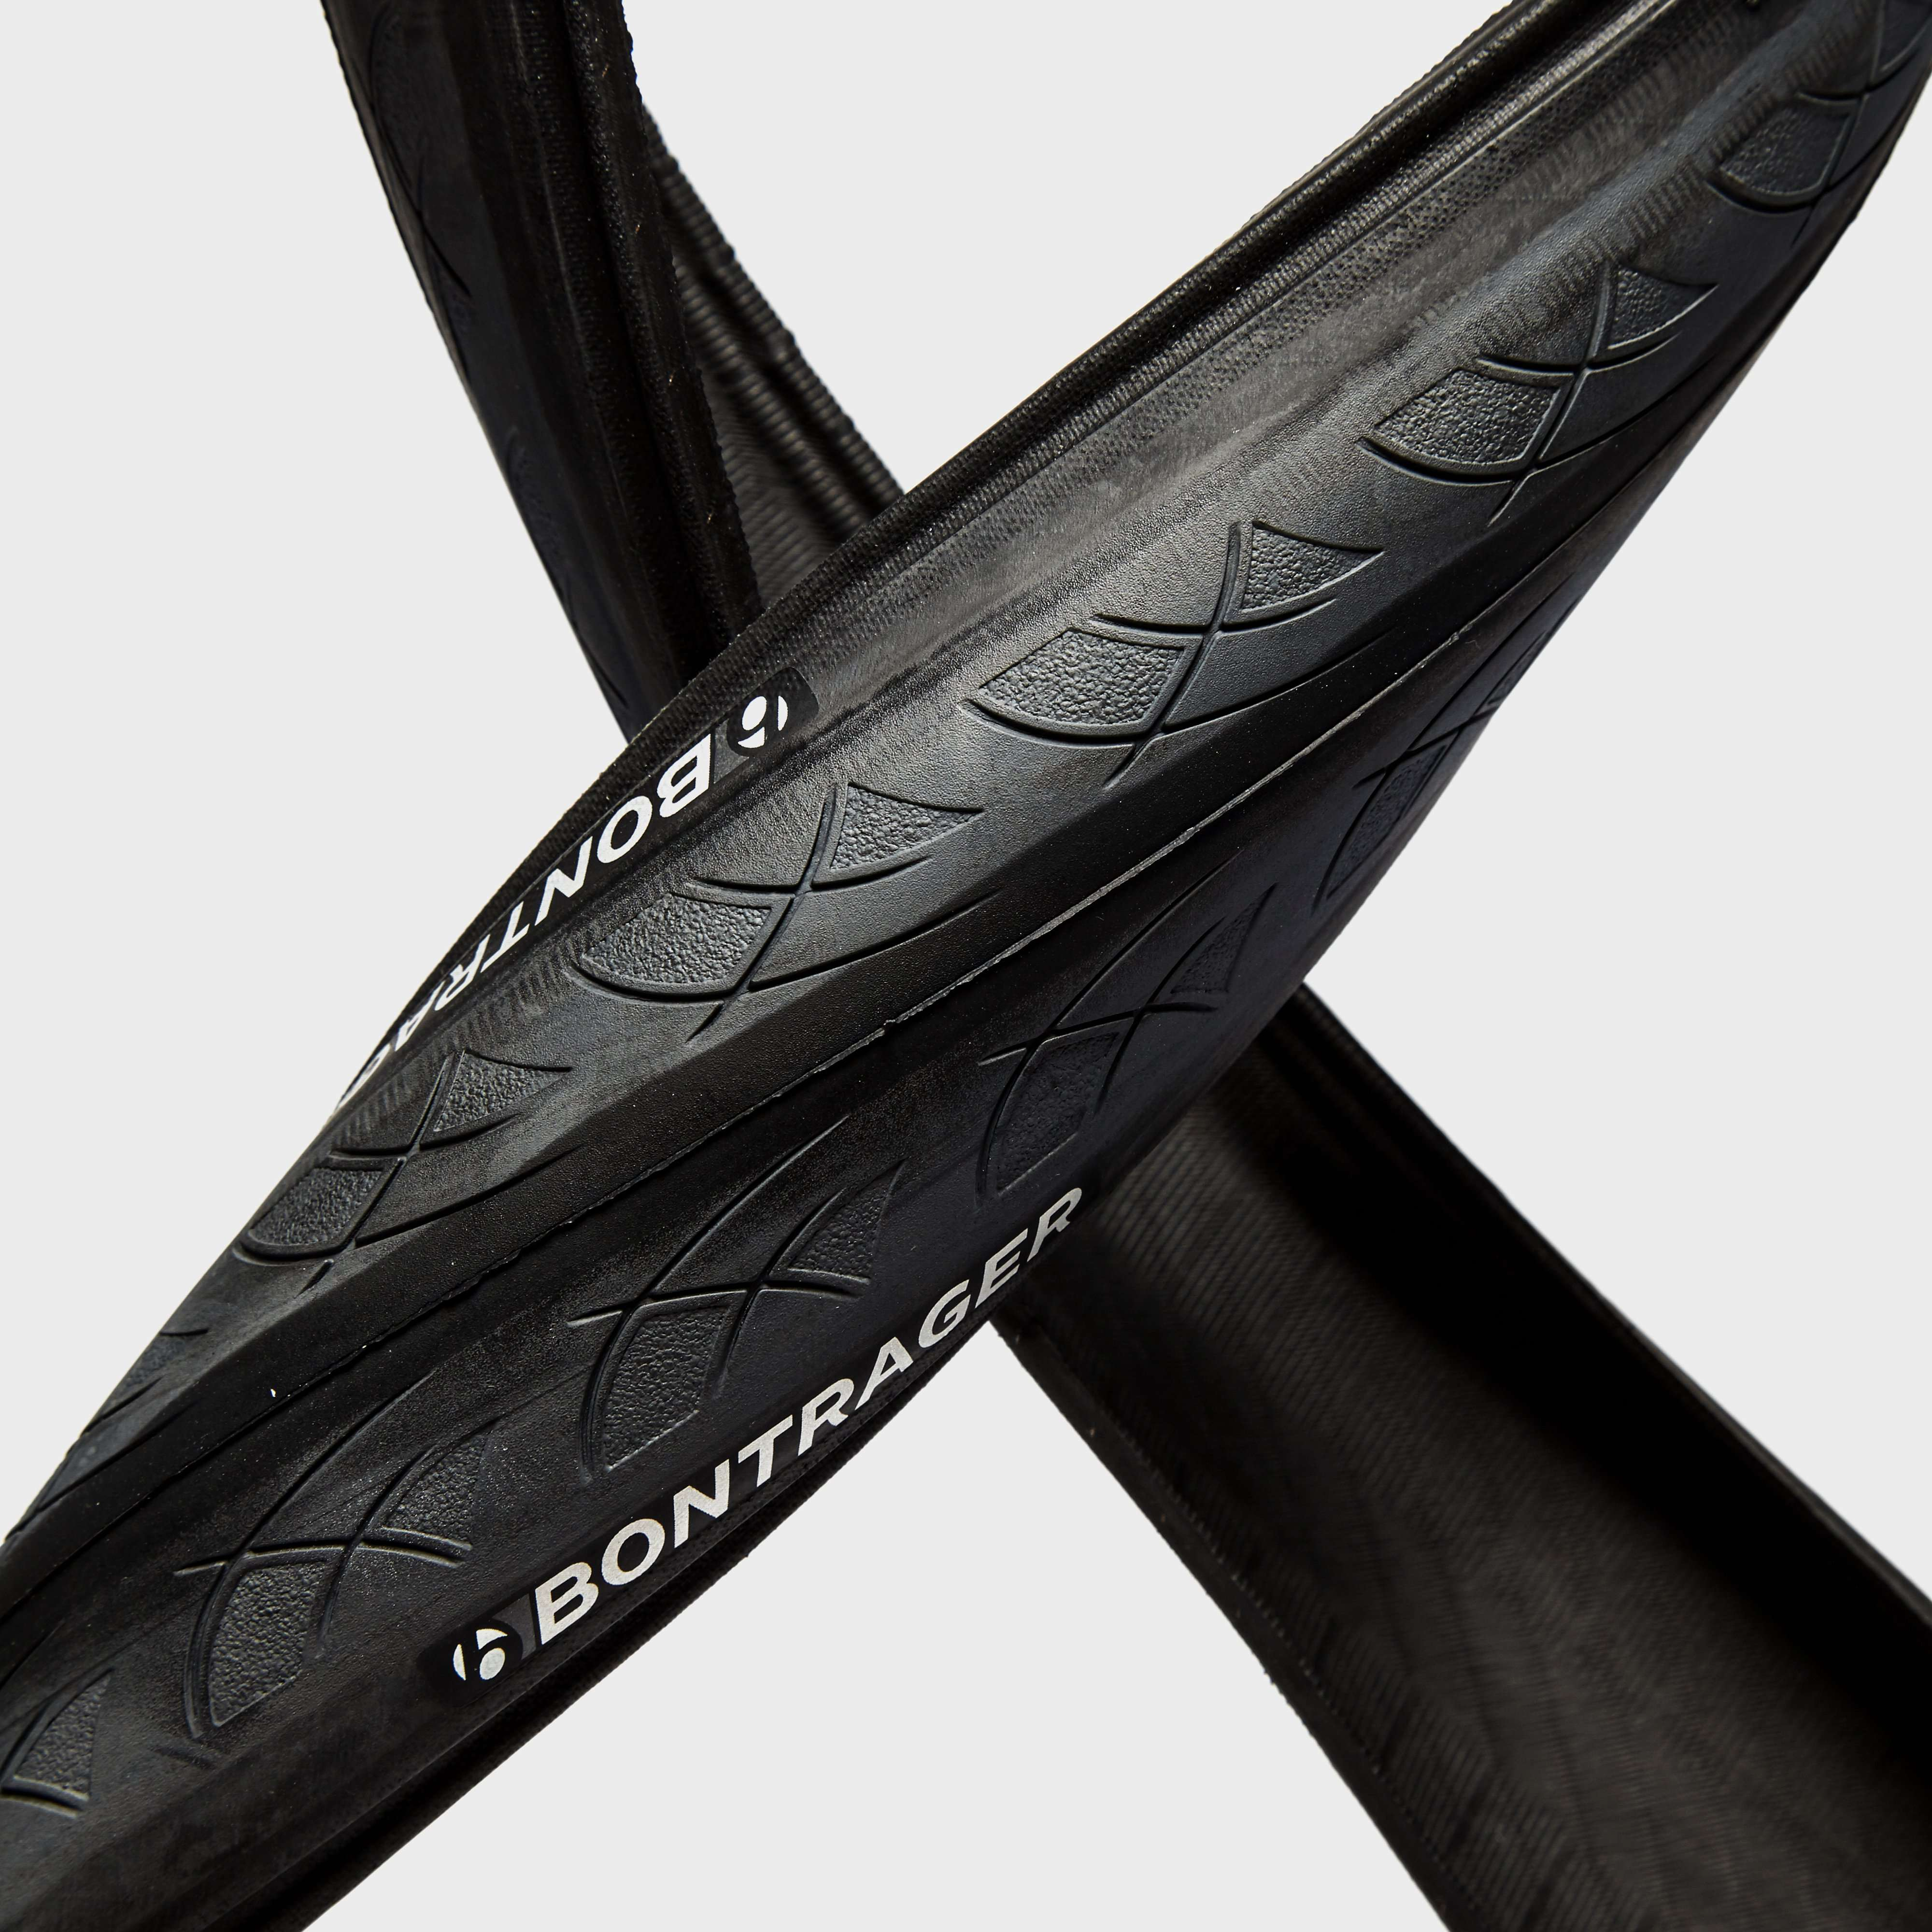 BONTRAGER 700 x 28C AW1 Hard-Case Lite Wired Road Tyre